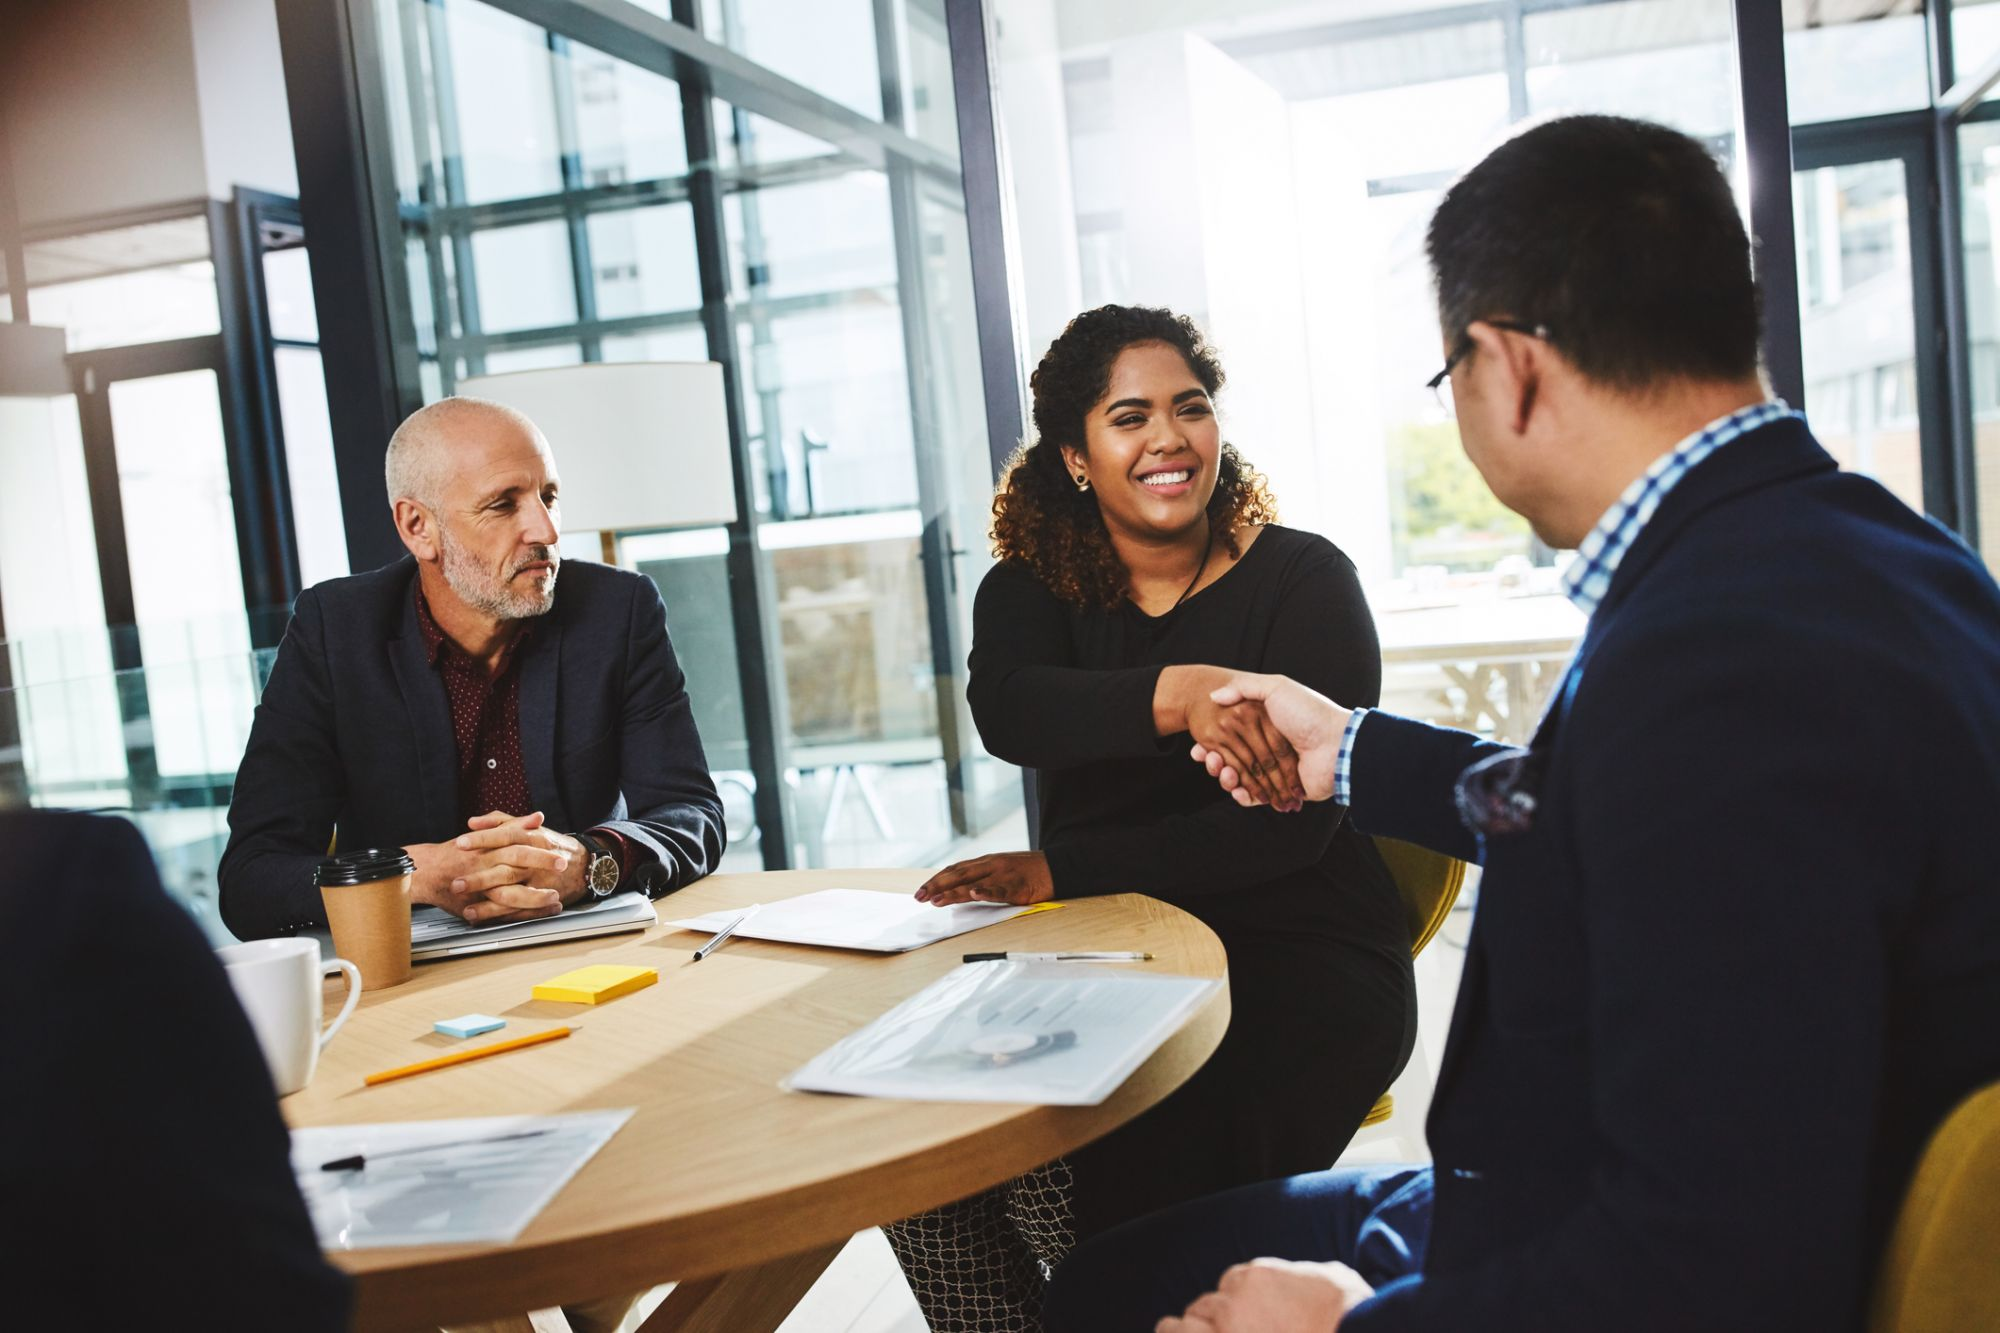 5 Things You Need to Know About Acquiring a Business